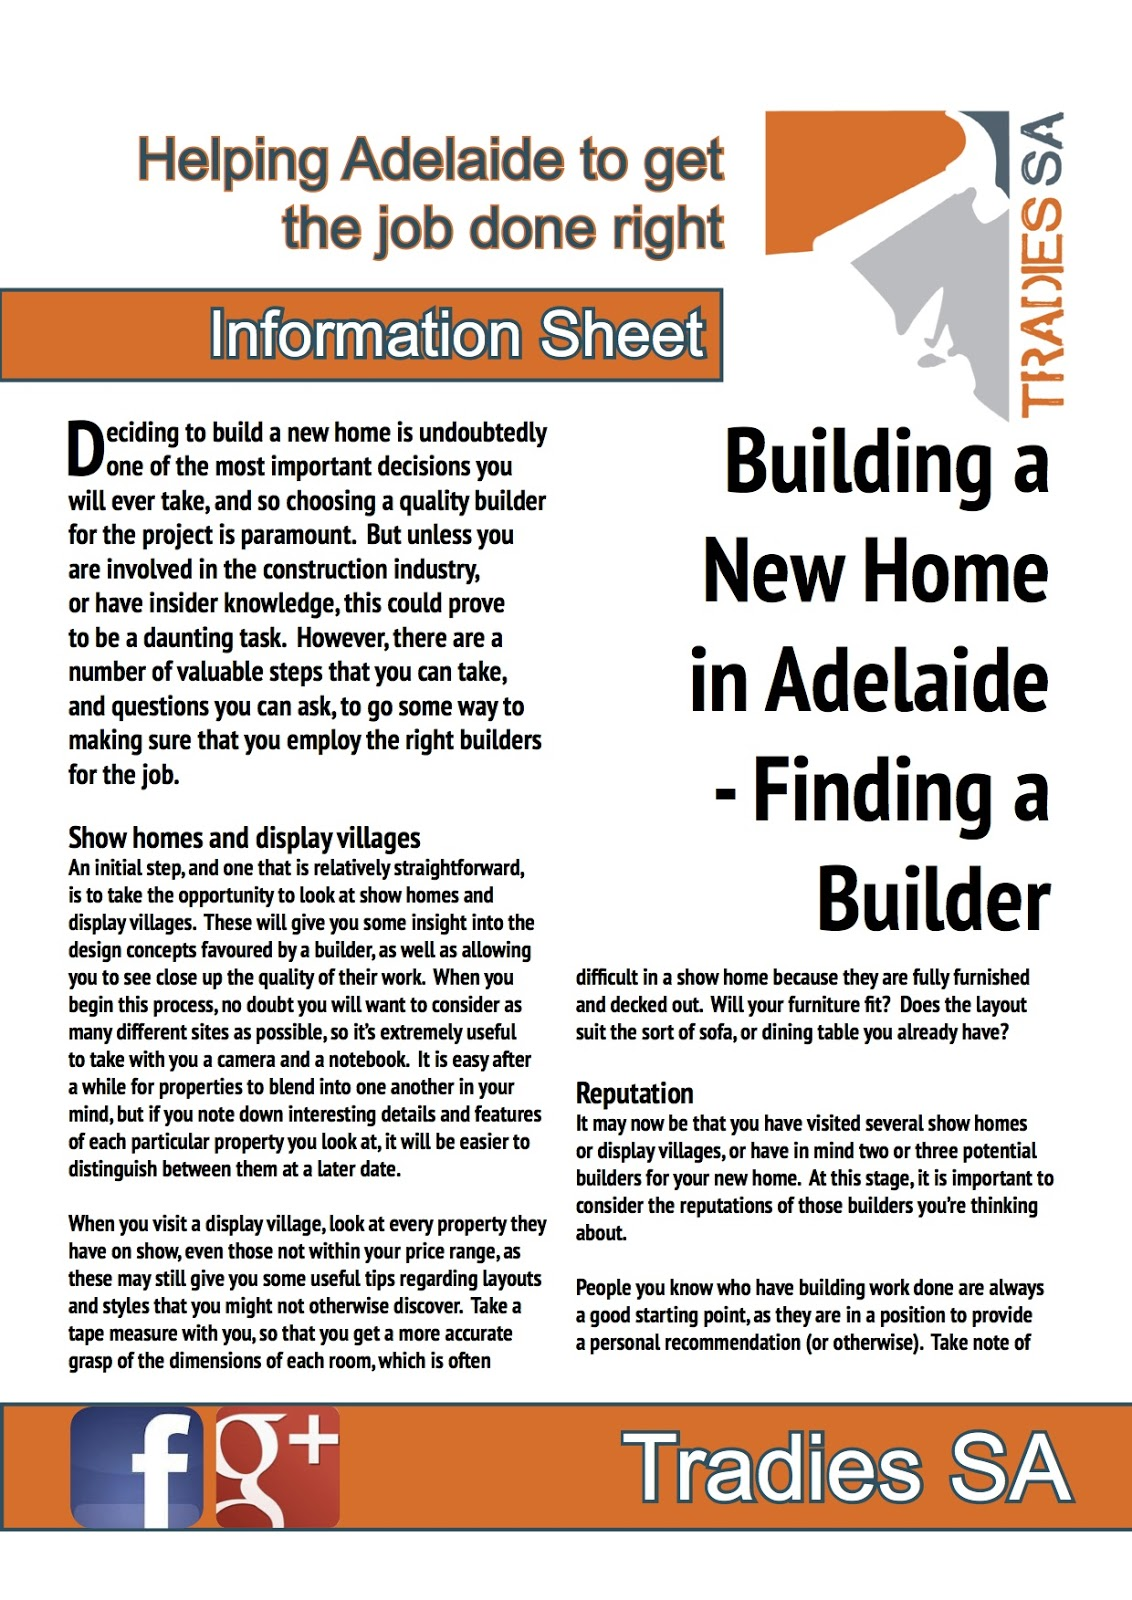 tradies sa find tradies in adelaide building a new home